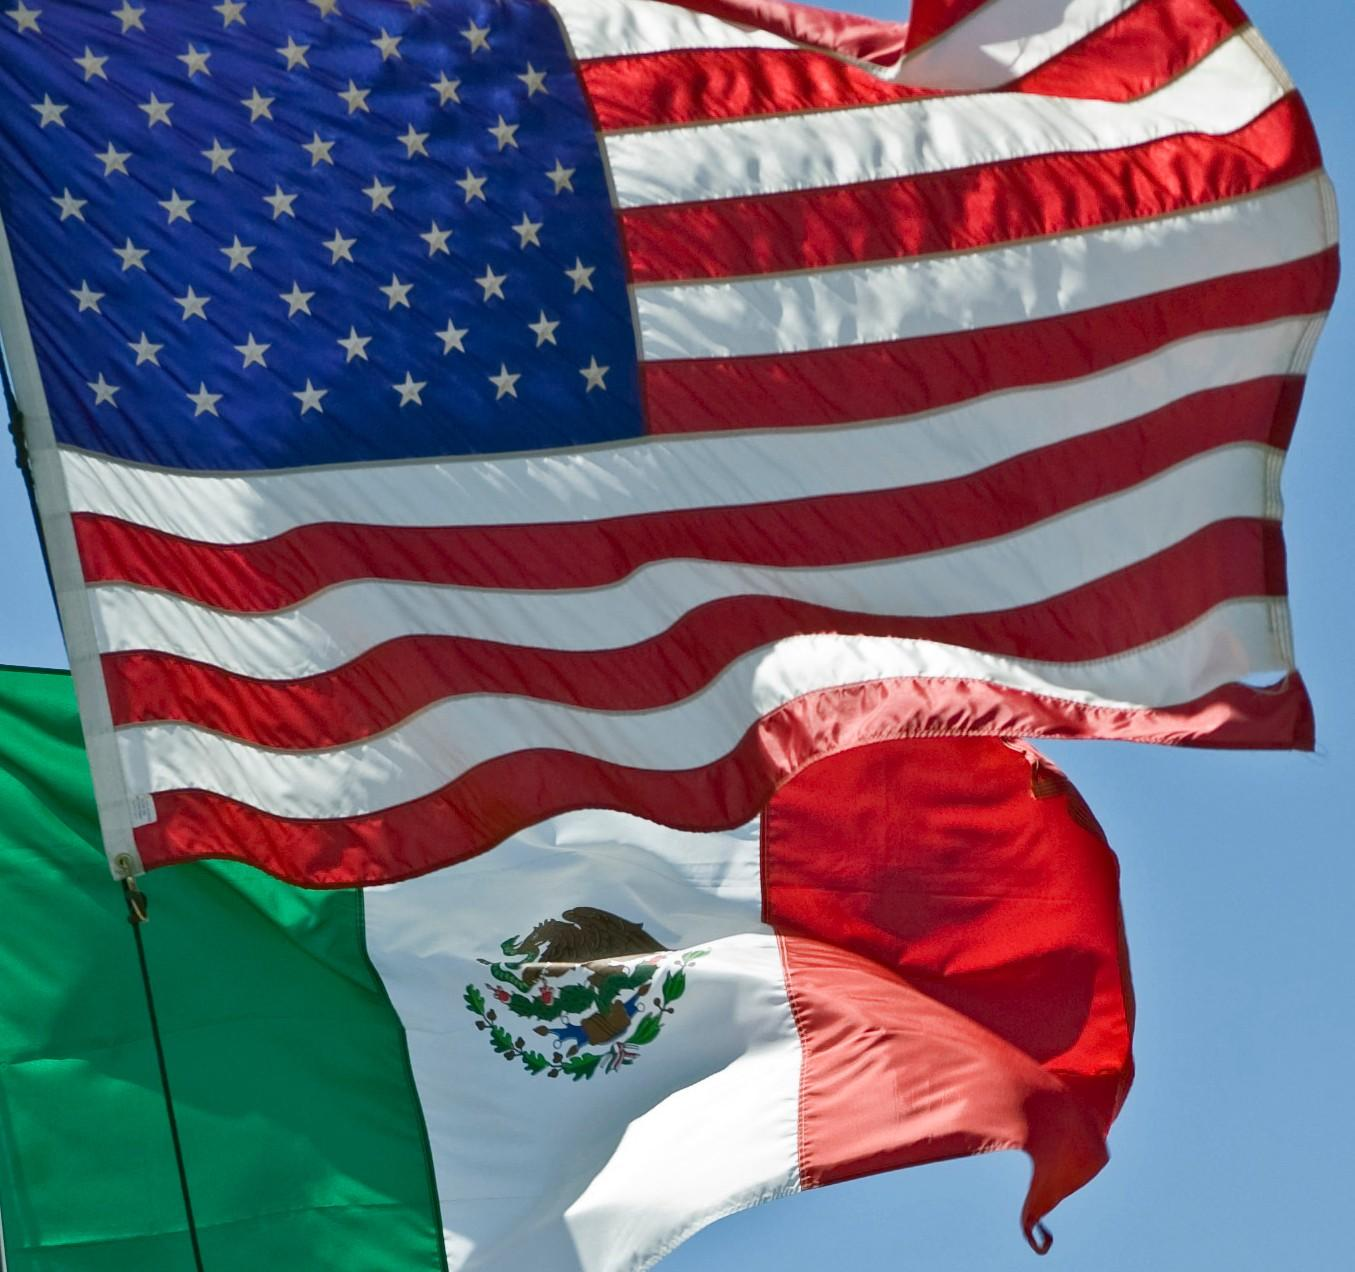 Mexico and U.S. head into immigration, tariff talks